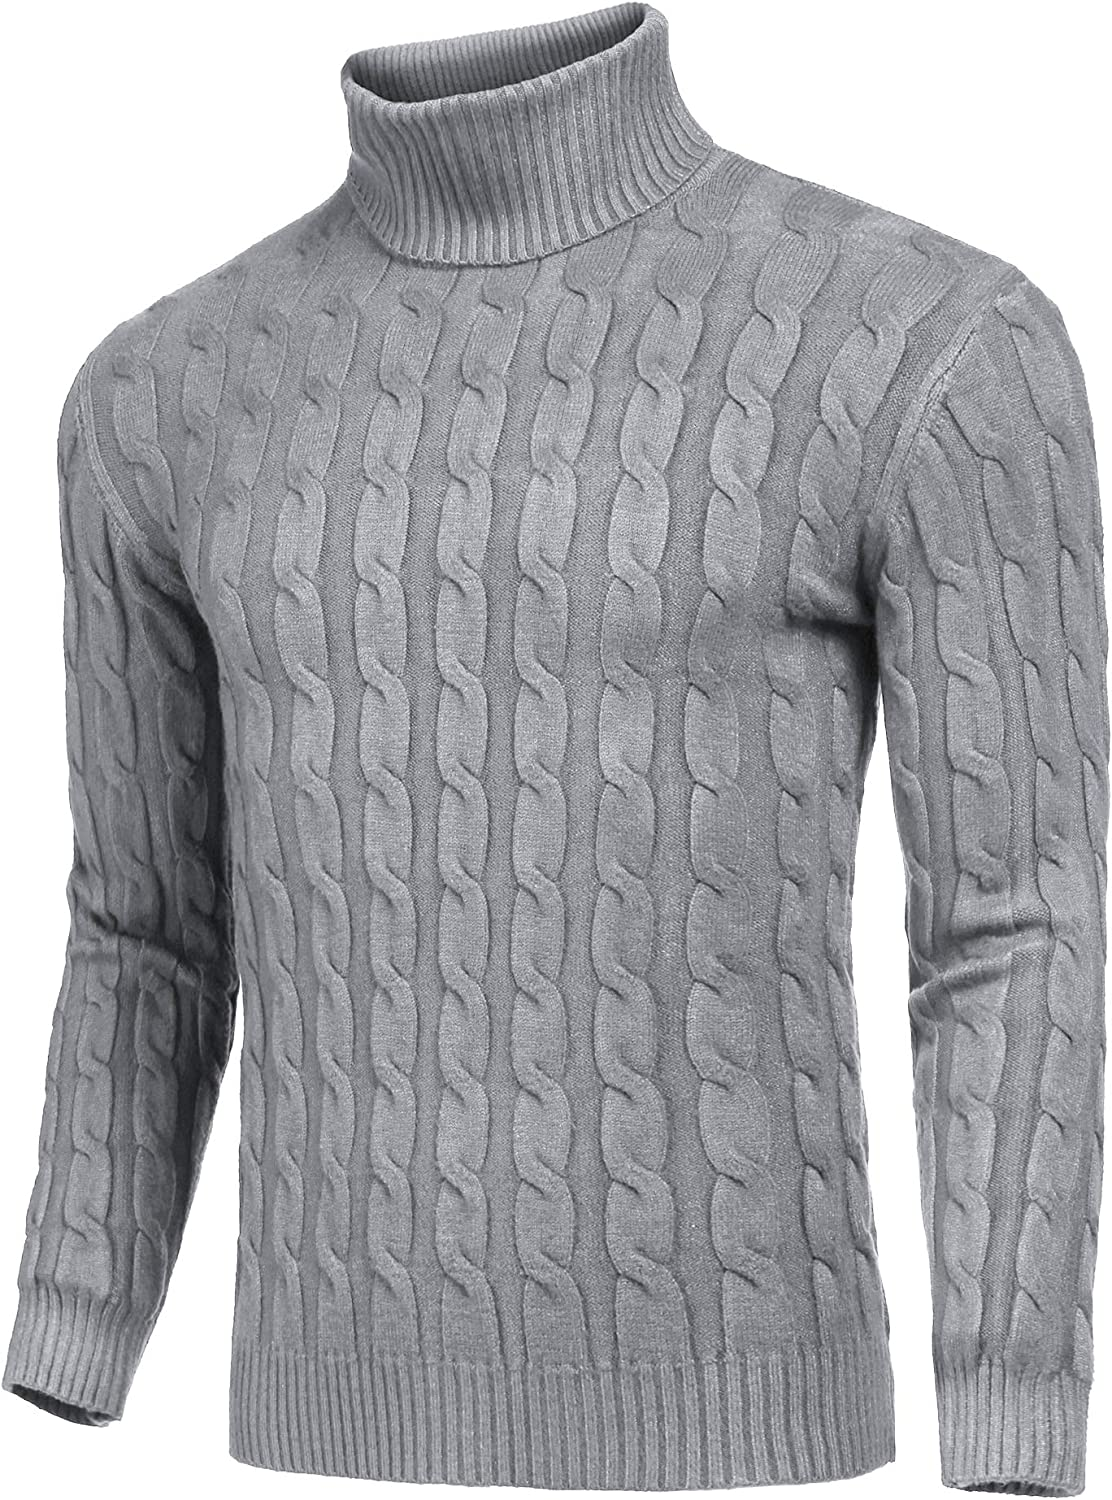 COOFANDY Mens Slim Fit Turtleneck Sweater Casual Twisted Knitted Pullover Sweaters